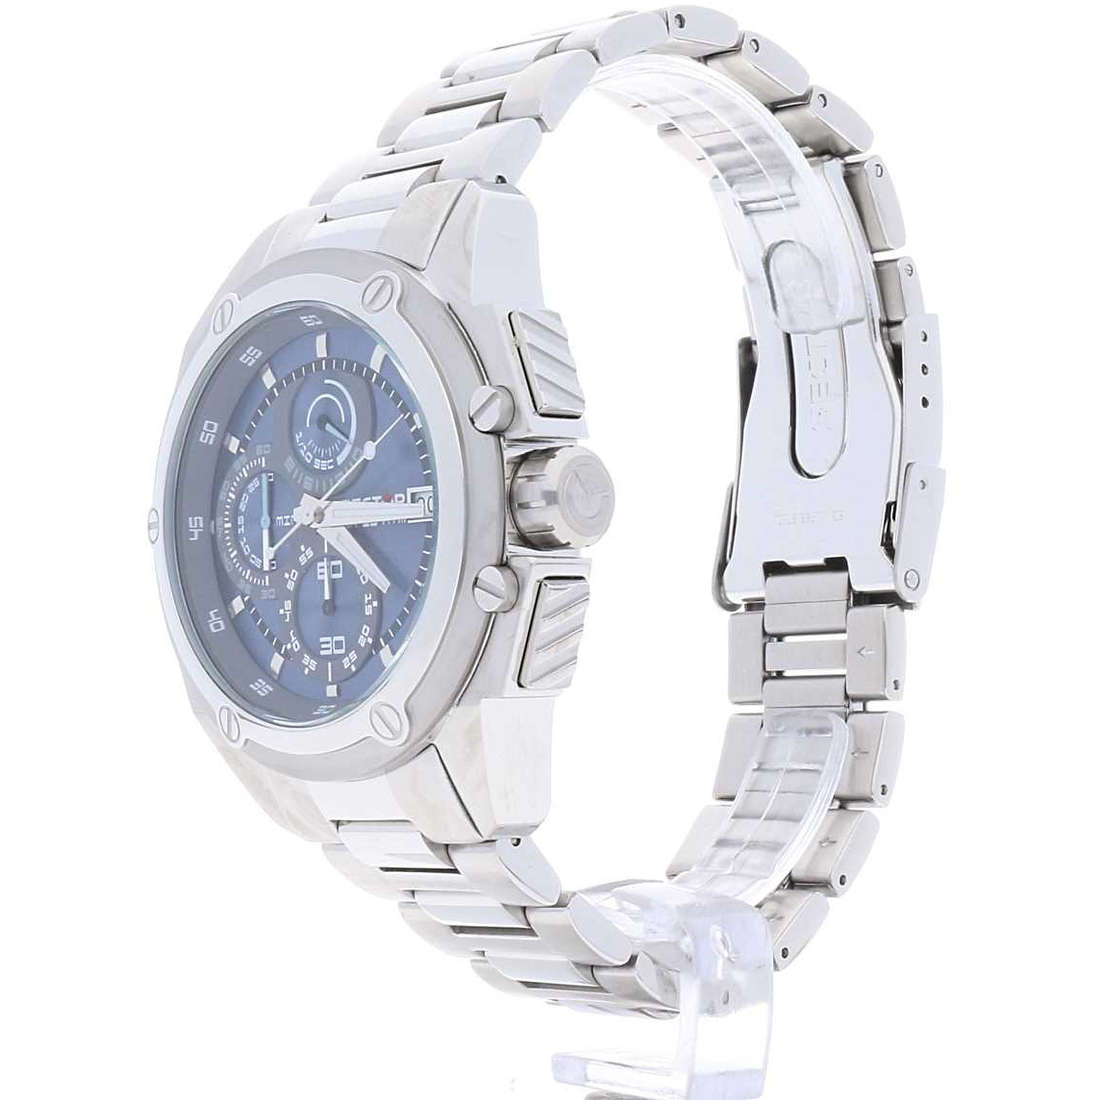 vente montres homme Sector R3273981001